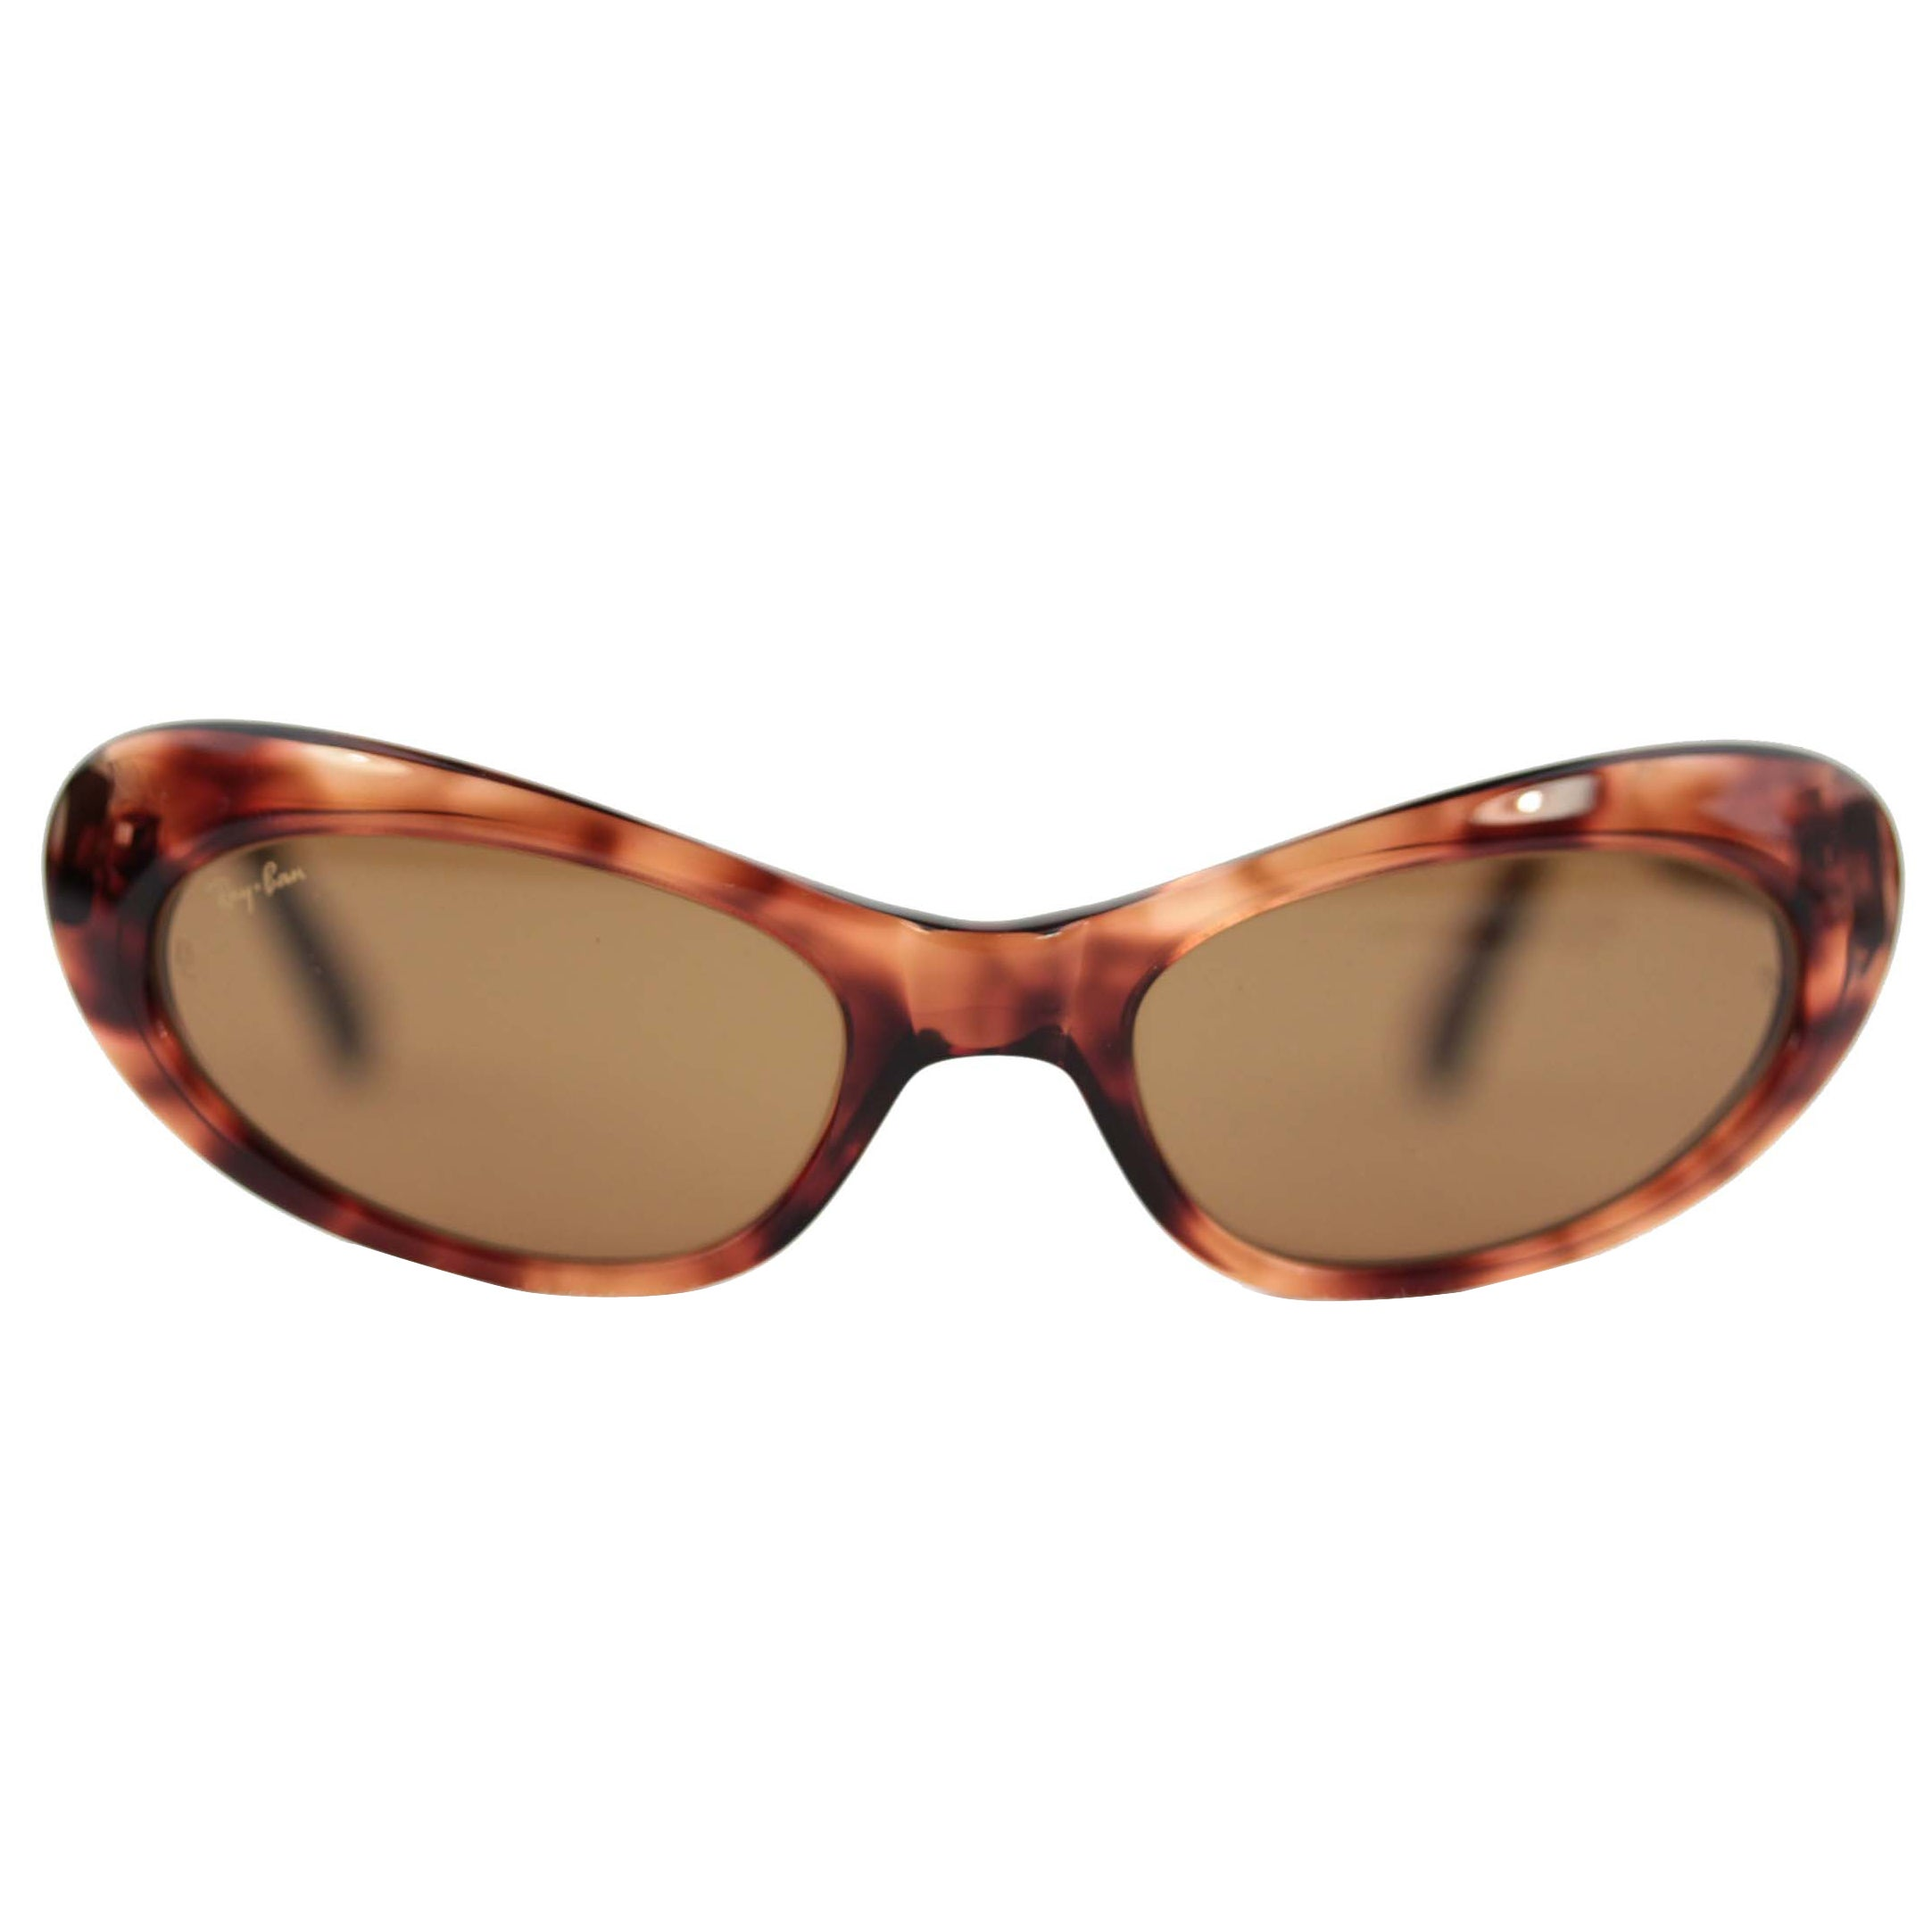 1487cc3eecc RAY-BAN B L Vintage RITUALS Tortoise Cat Eye SUNGLASSES W2523 w CASE For  Sale at 1stdibs